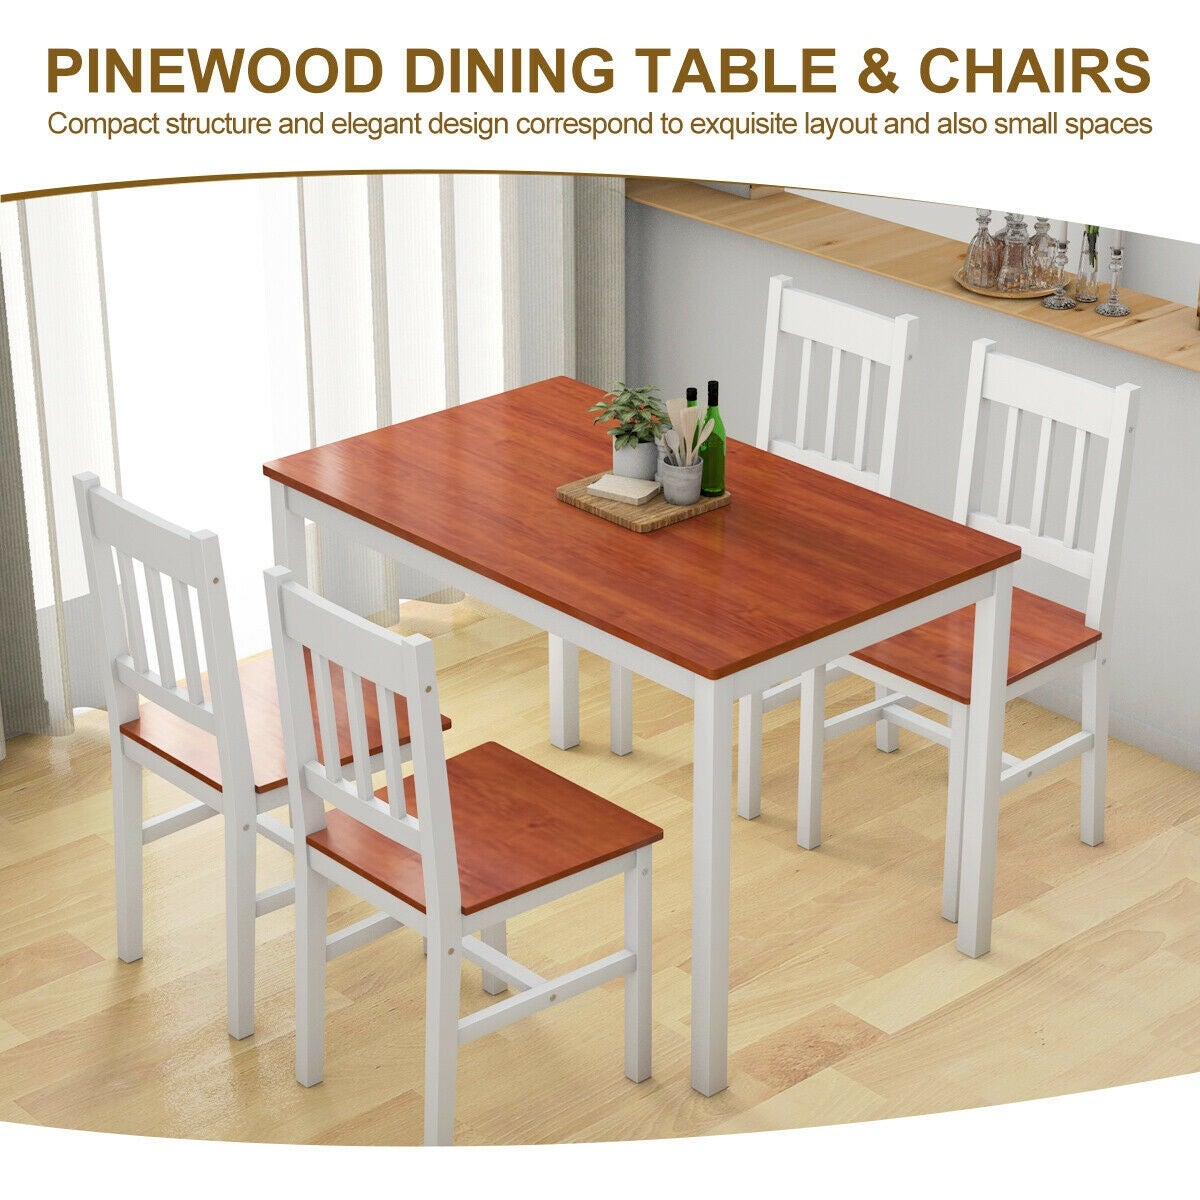 Gymax 5 Piece Dining Table Set 4 Chairs Solid Wood Home Kitchen Breakfast Furniture As Pic Free Shipping Today 20682498